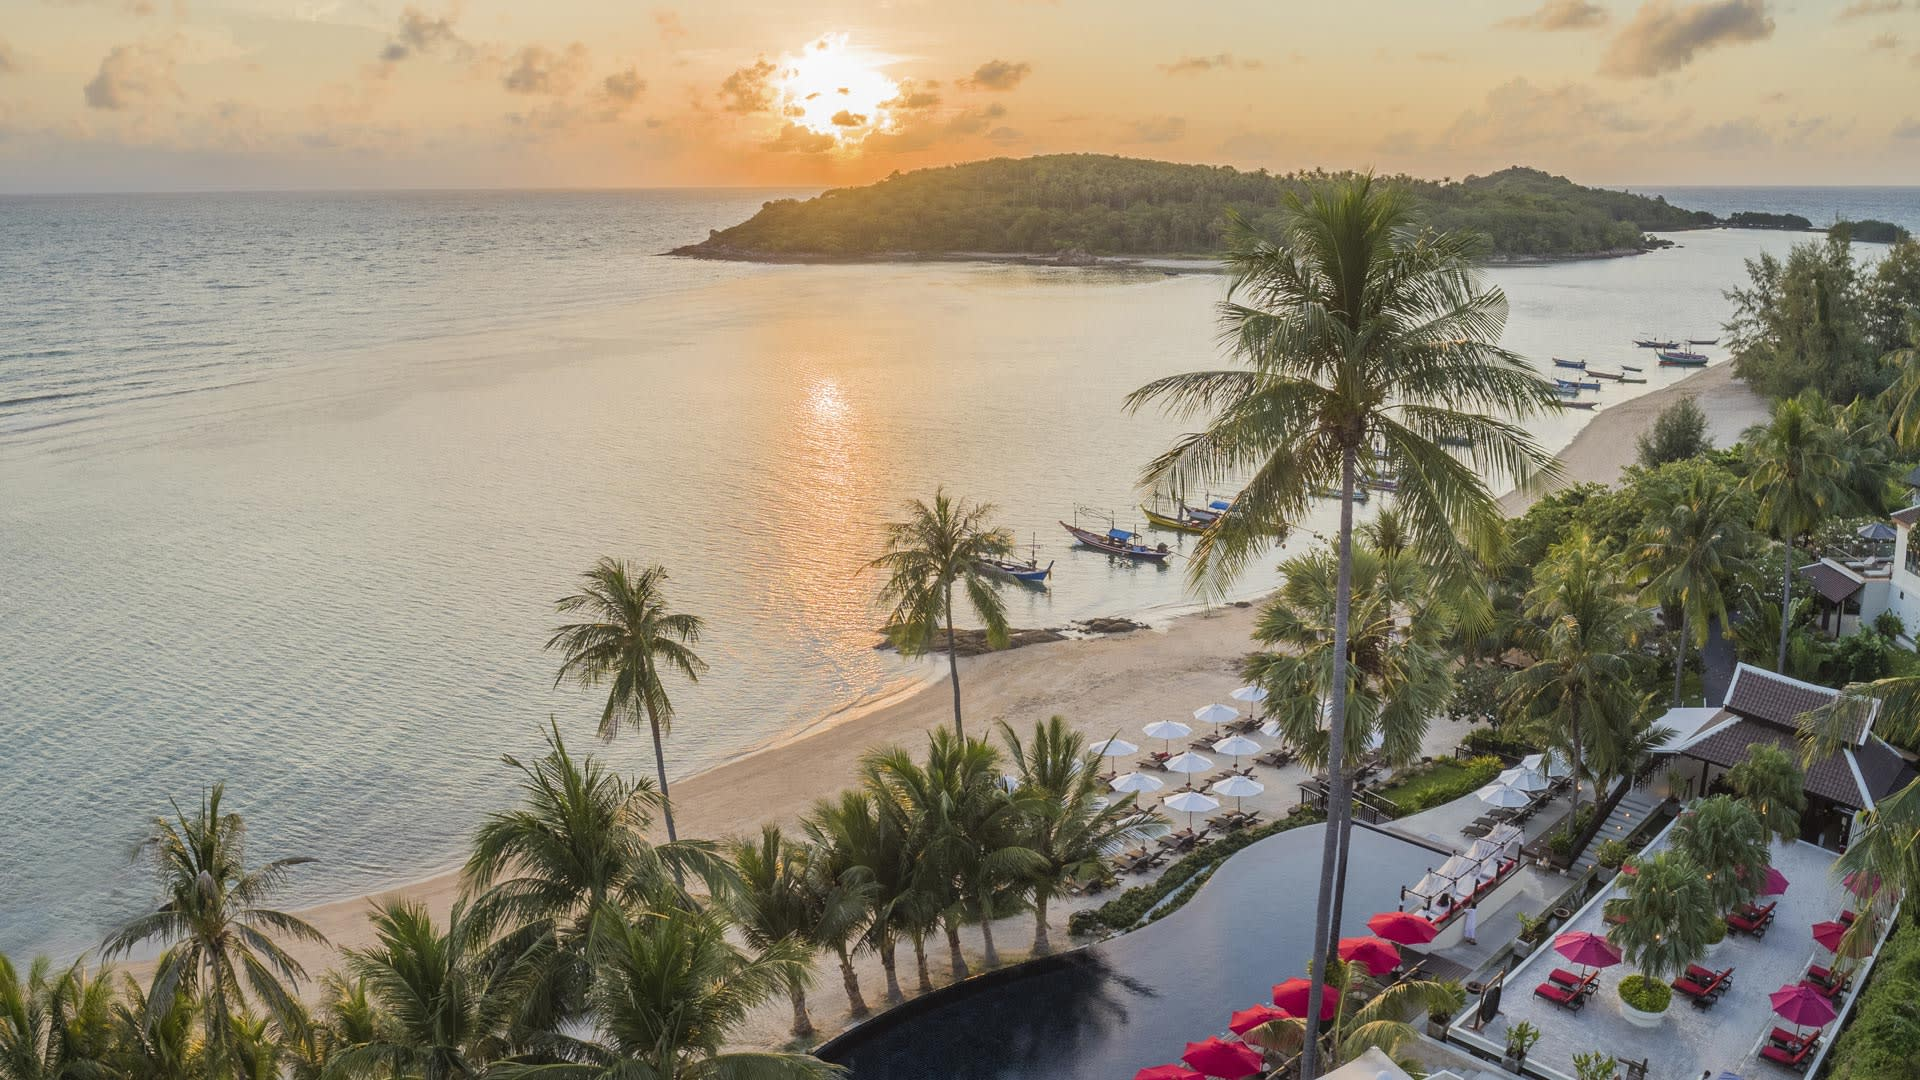 https://assets.anantara.com/image/upload/q_auto/media/minor/anantara/images/anantara-lawana-koh-samui-resort/the-resort/desktop-banner/anantara_lawana_the_resort_desktop_banner_1920x1080.jpg